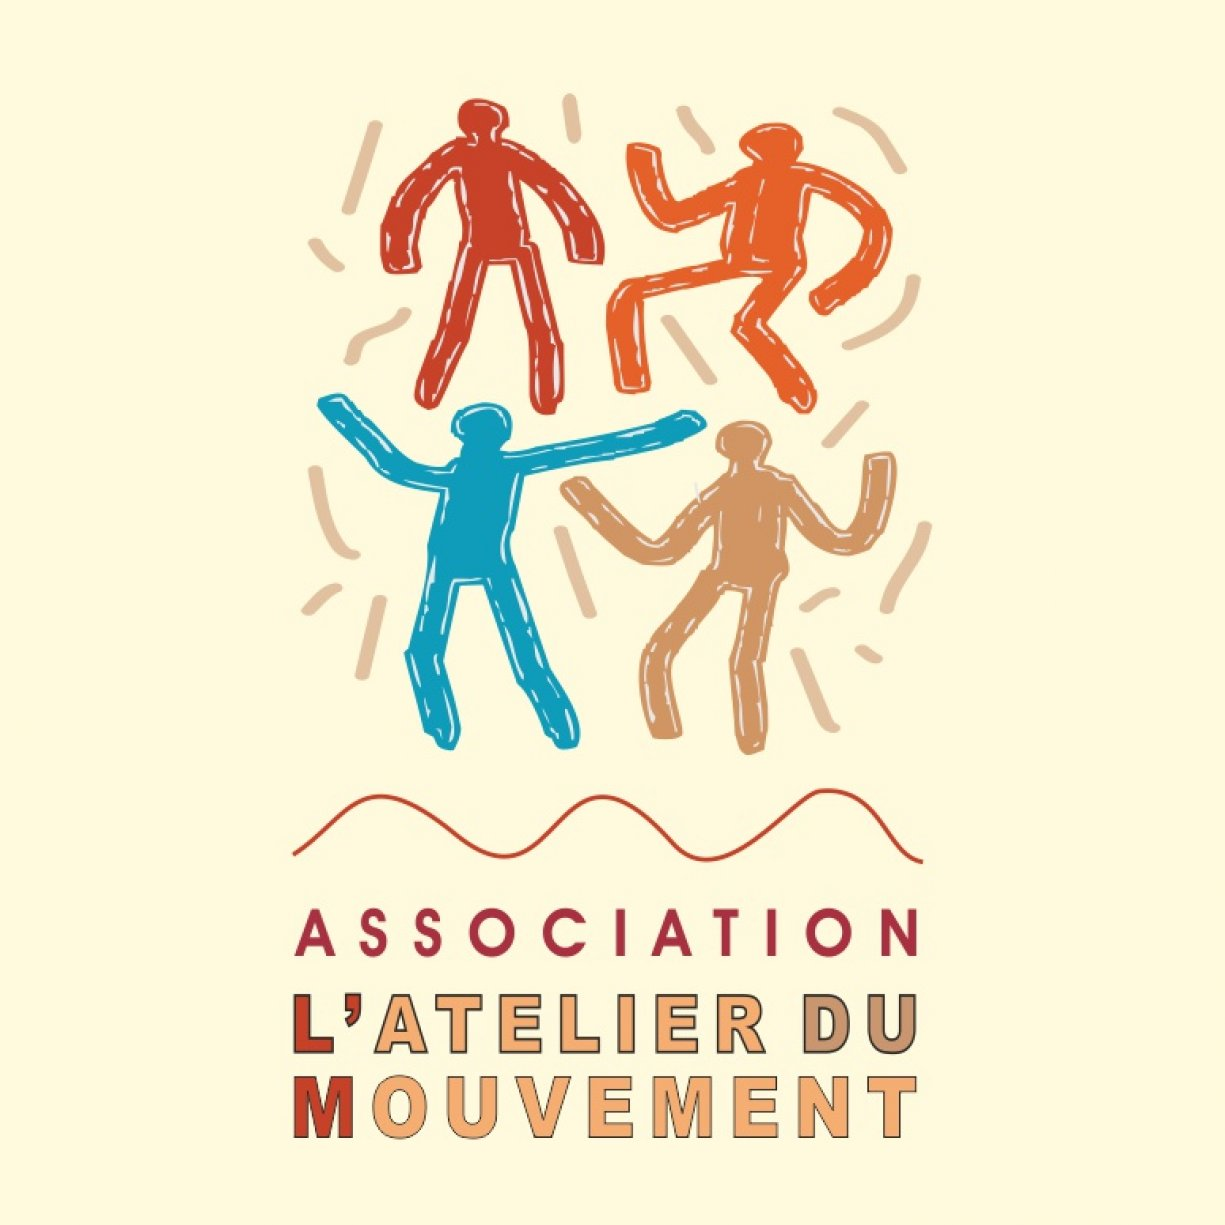 L'atelier du Mouvement Association